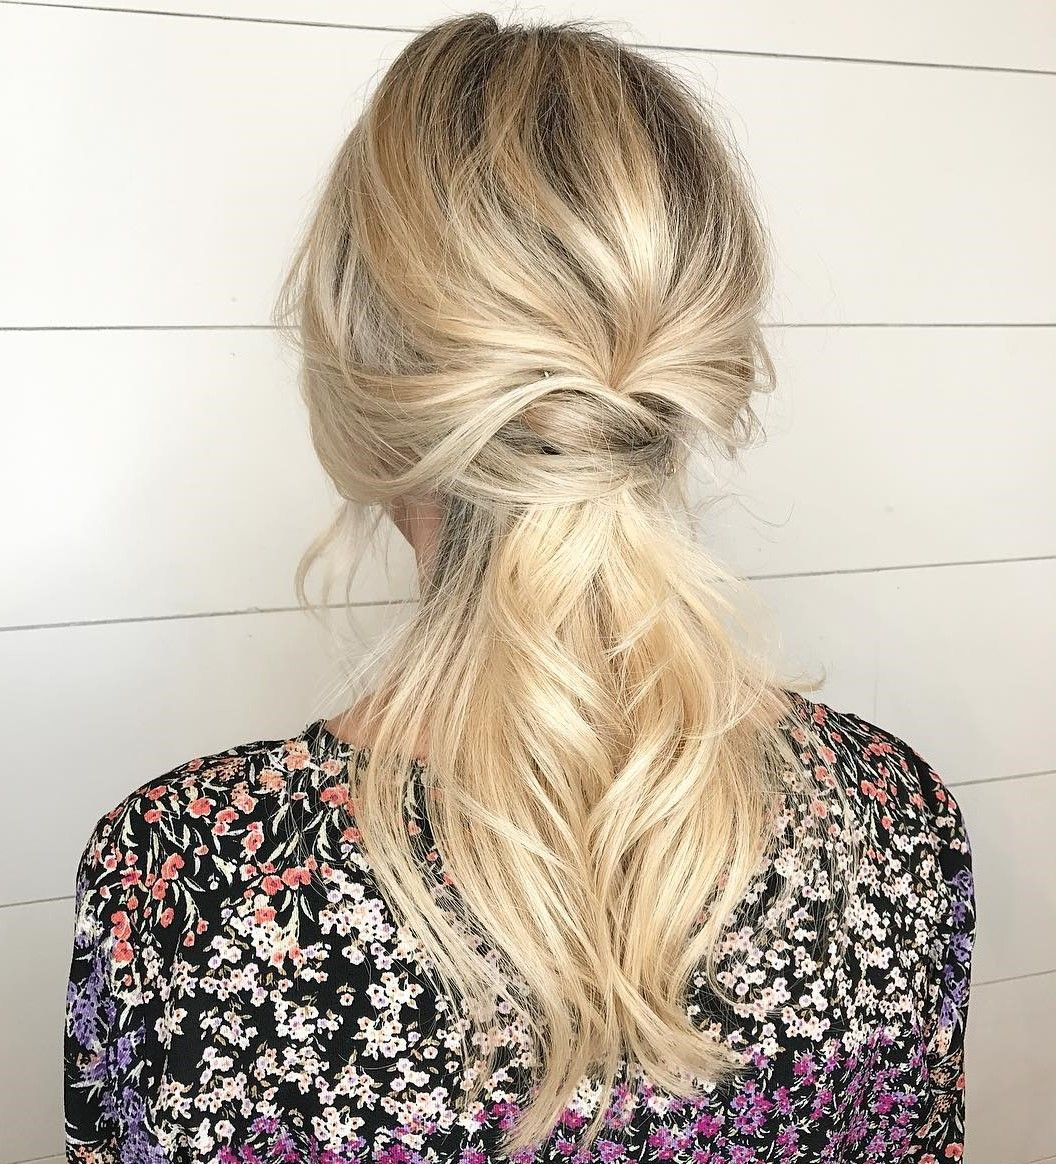 50 Ravishing Mother Of The Bride Hairstyles Low Ponytail Hairstyles Mother Of The Bride Hair Ponytail Hairstyles